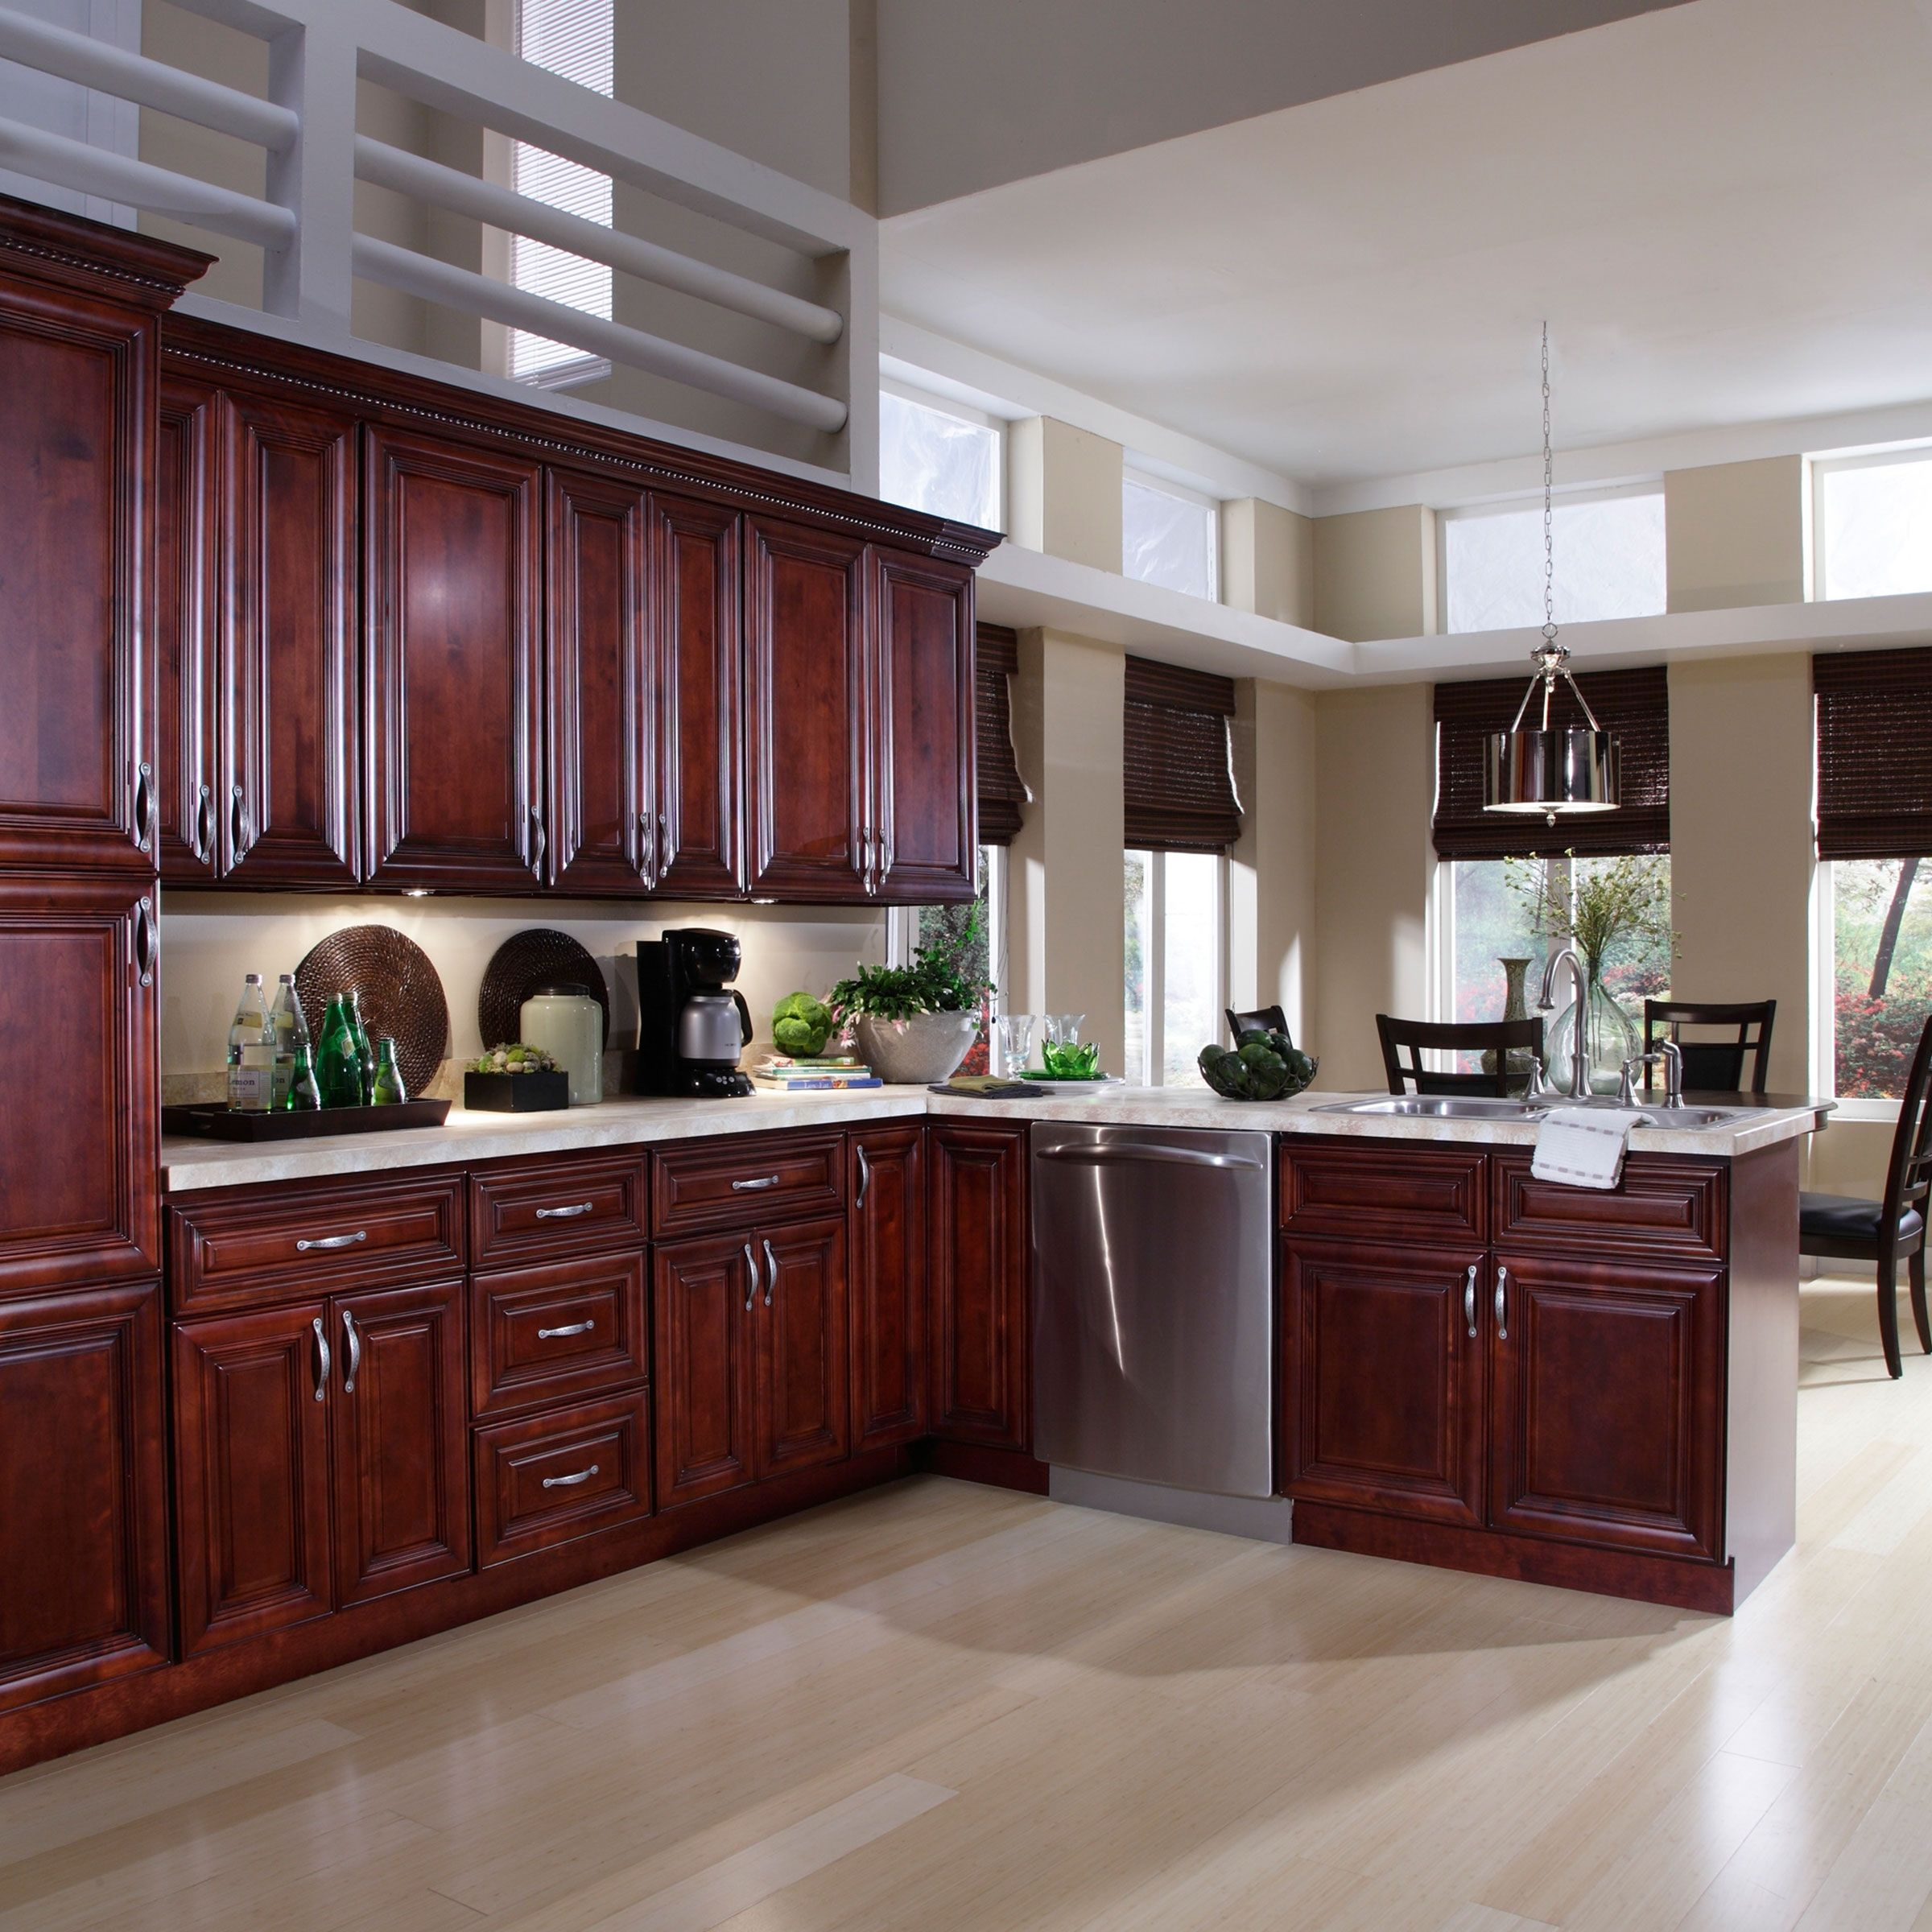 with bronze drawers presenting appealing kitchen seen ideas size doors full most of design round and also amazing finishes cup cabinets styles style pull knob cabinet glass lovable white creative contemporary